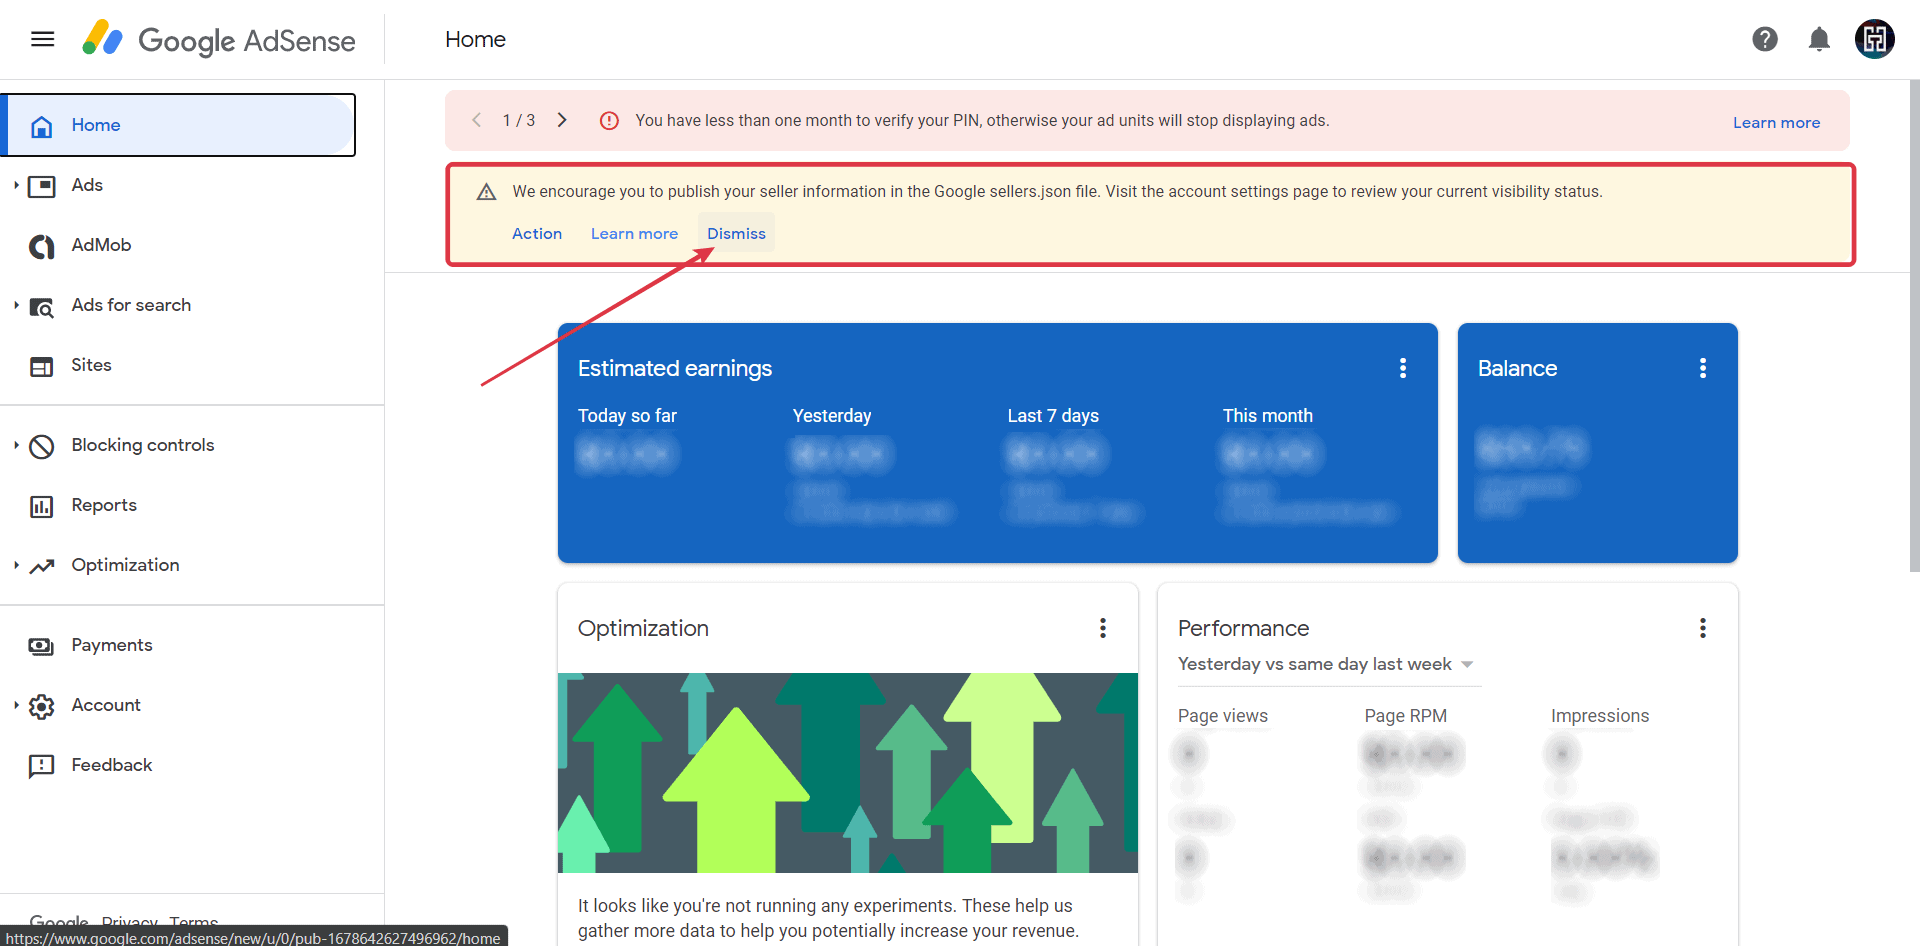 Click Dismiss to remove the Google sellers.json notification